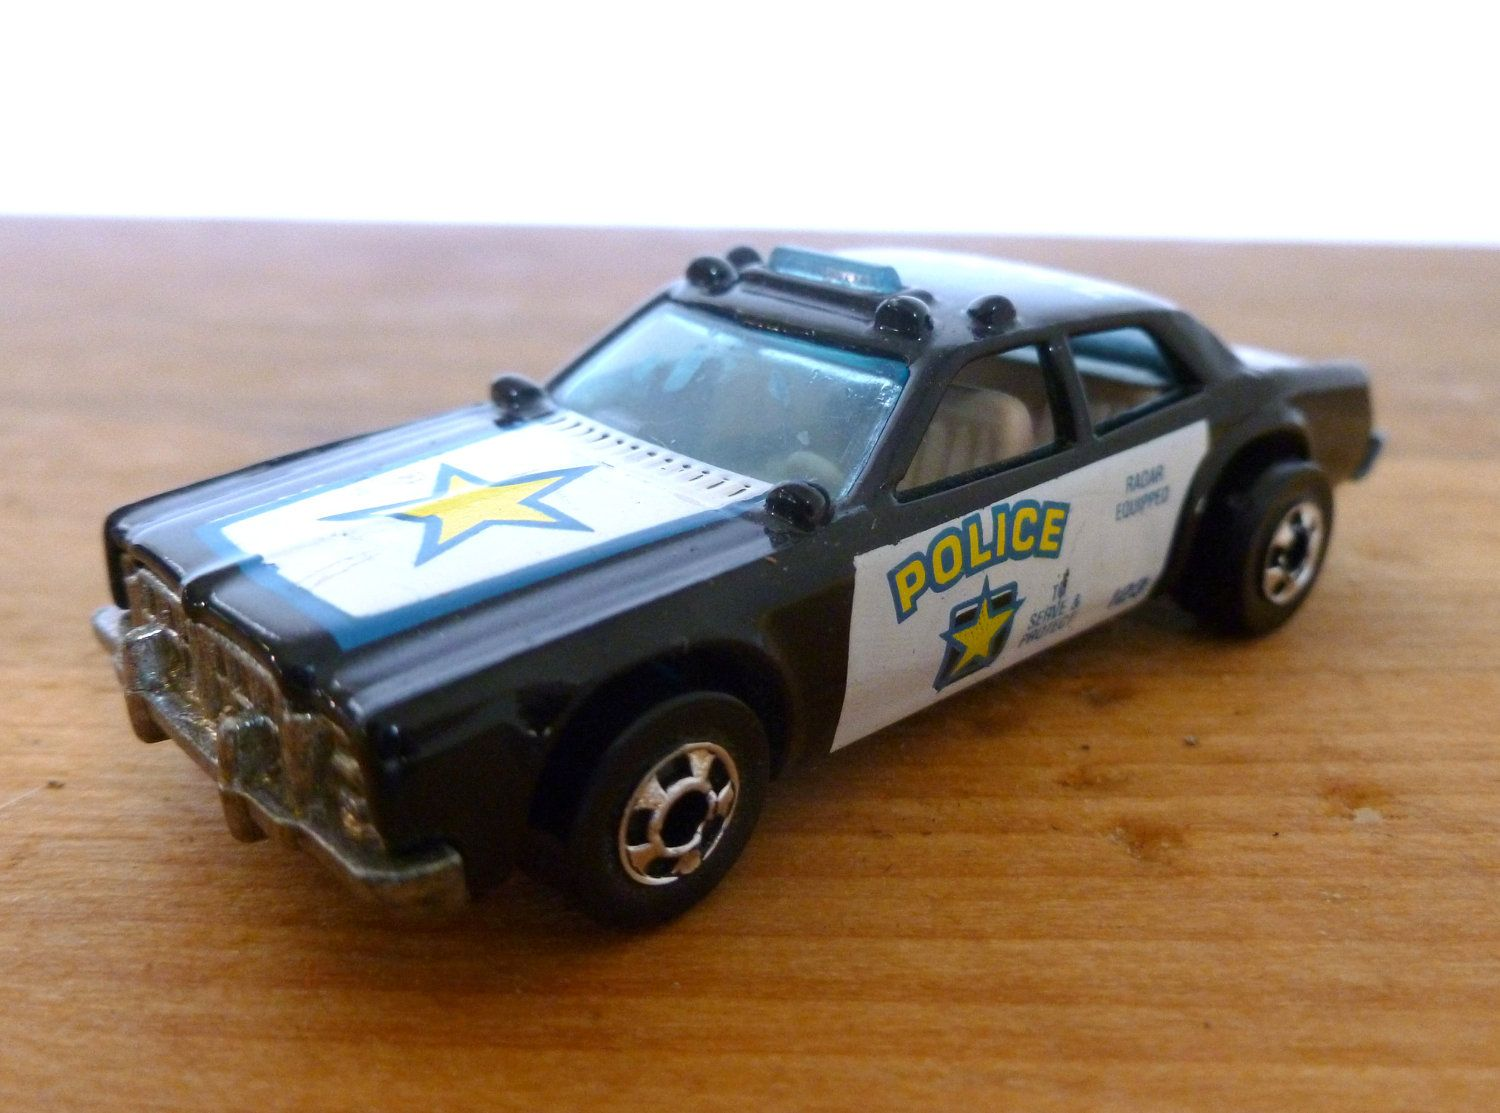 Toys car for child  Vintage  HOT WHEELS Mattel Police Car Toy us Retro  toys